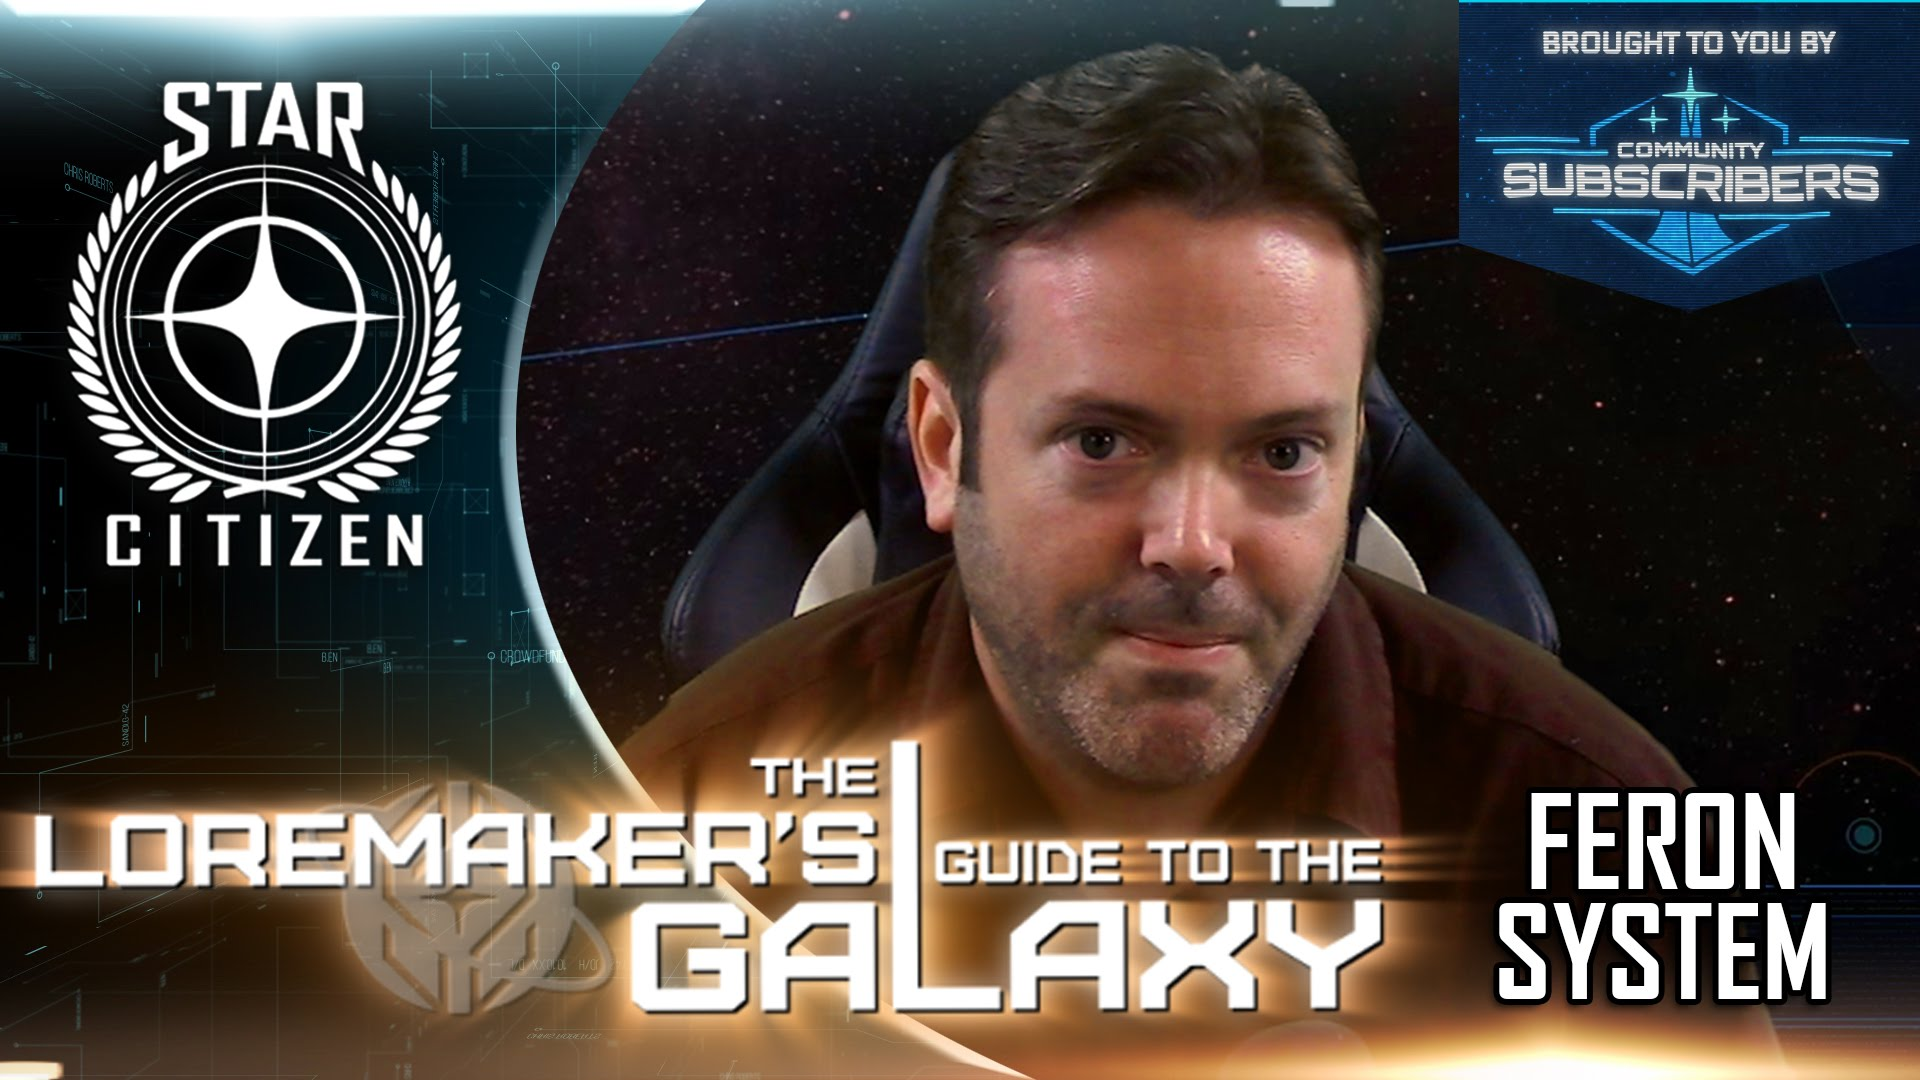 Star Citizen: Loremaker's Guide to the Galaxy - Ferron System